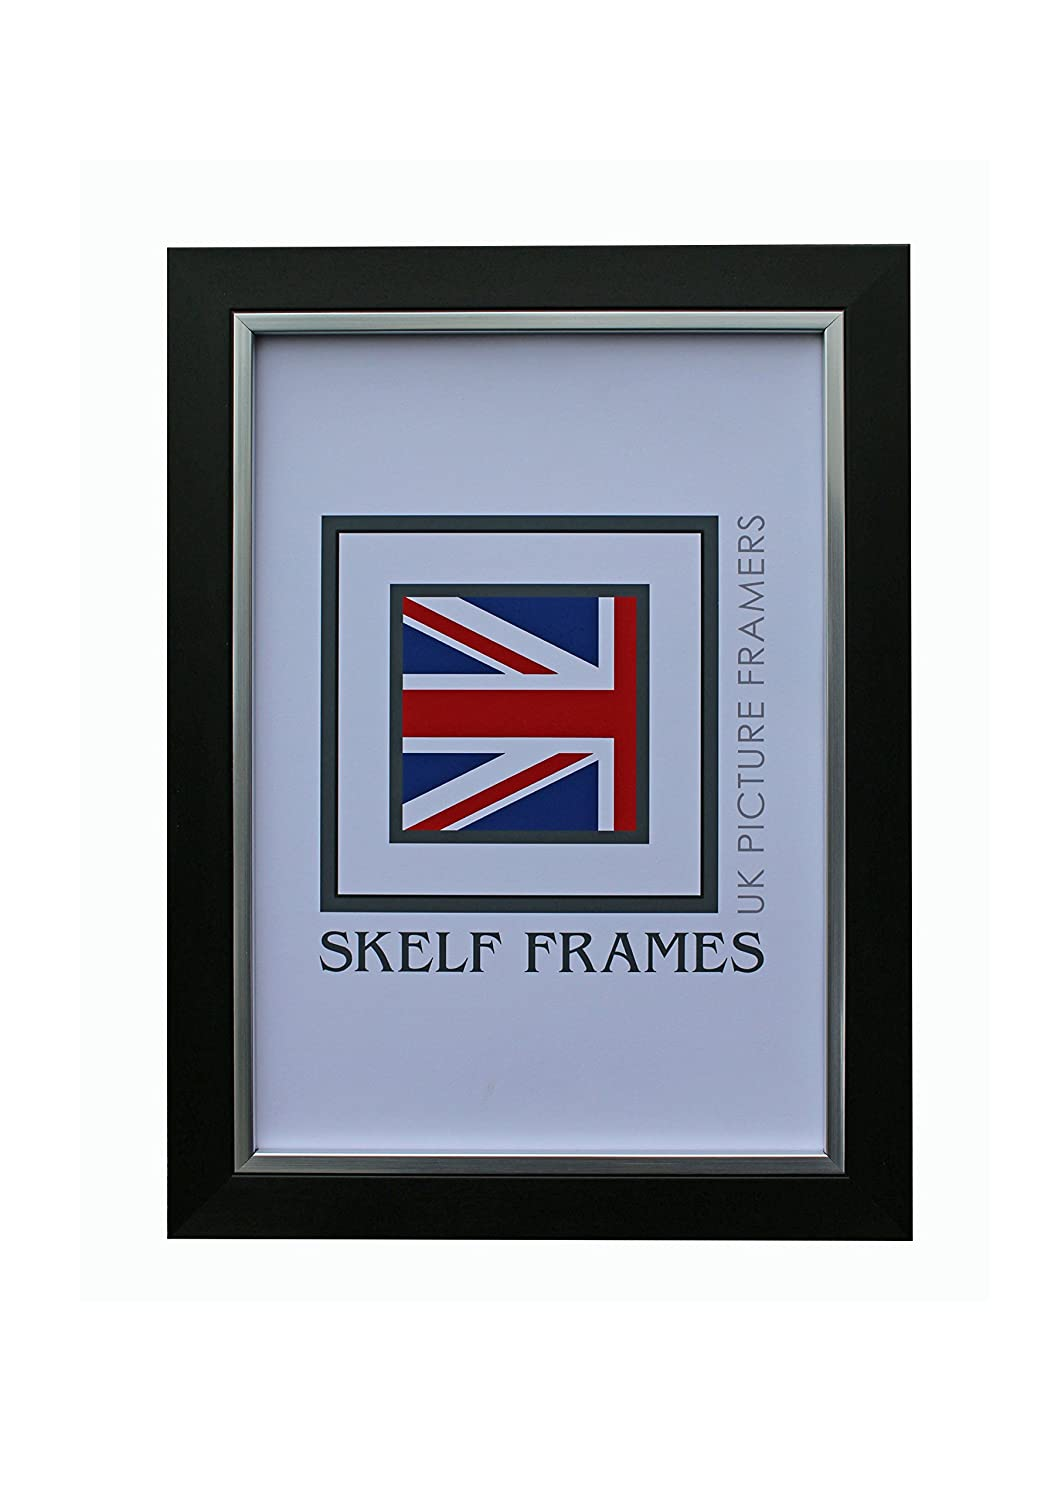 BRUSH BLACK AND SILVER PICTURE POSTER PHOTO FRAME WITH GLASS (5x3.5) Skelf Frames Ltd